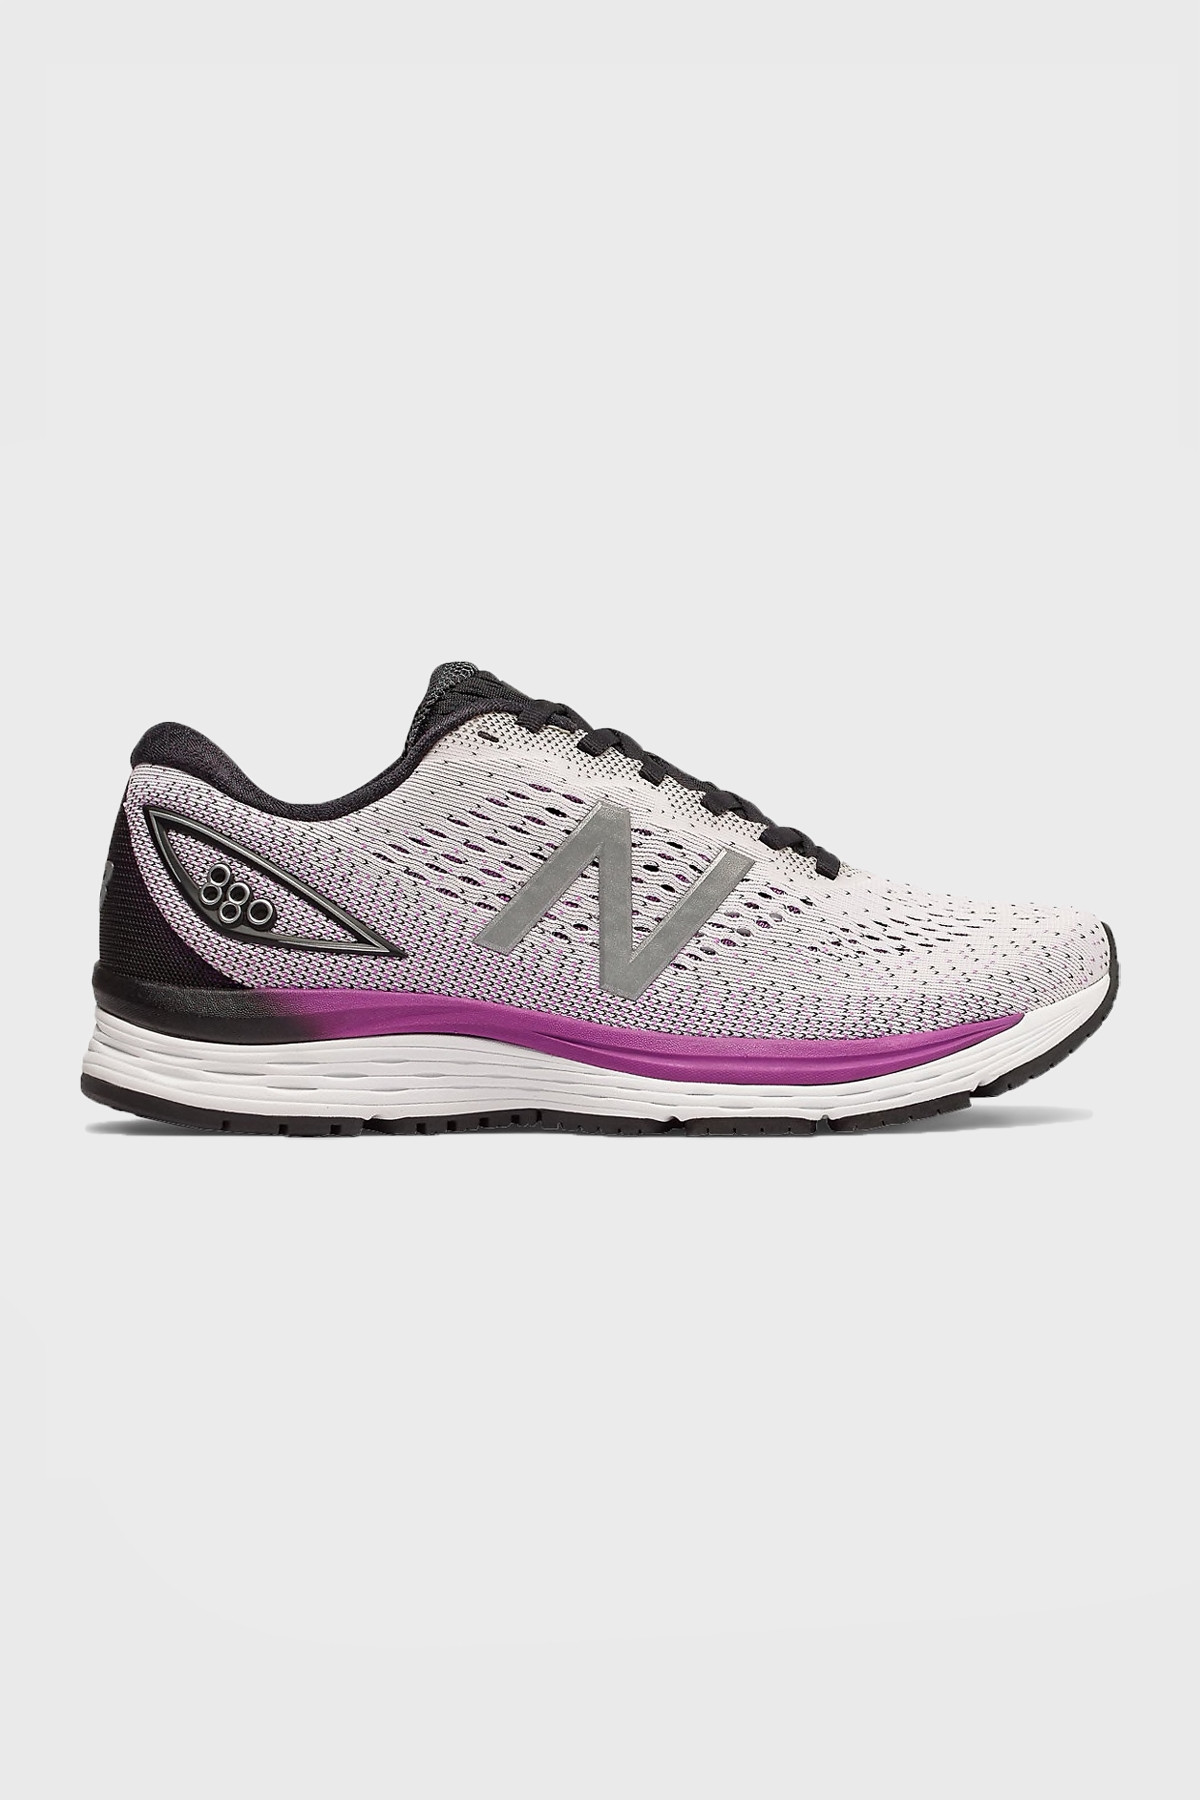 New Balance W - 880 V9 - White with Voltage Violet & Black